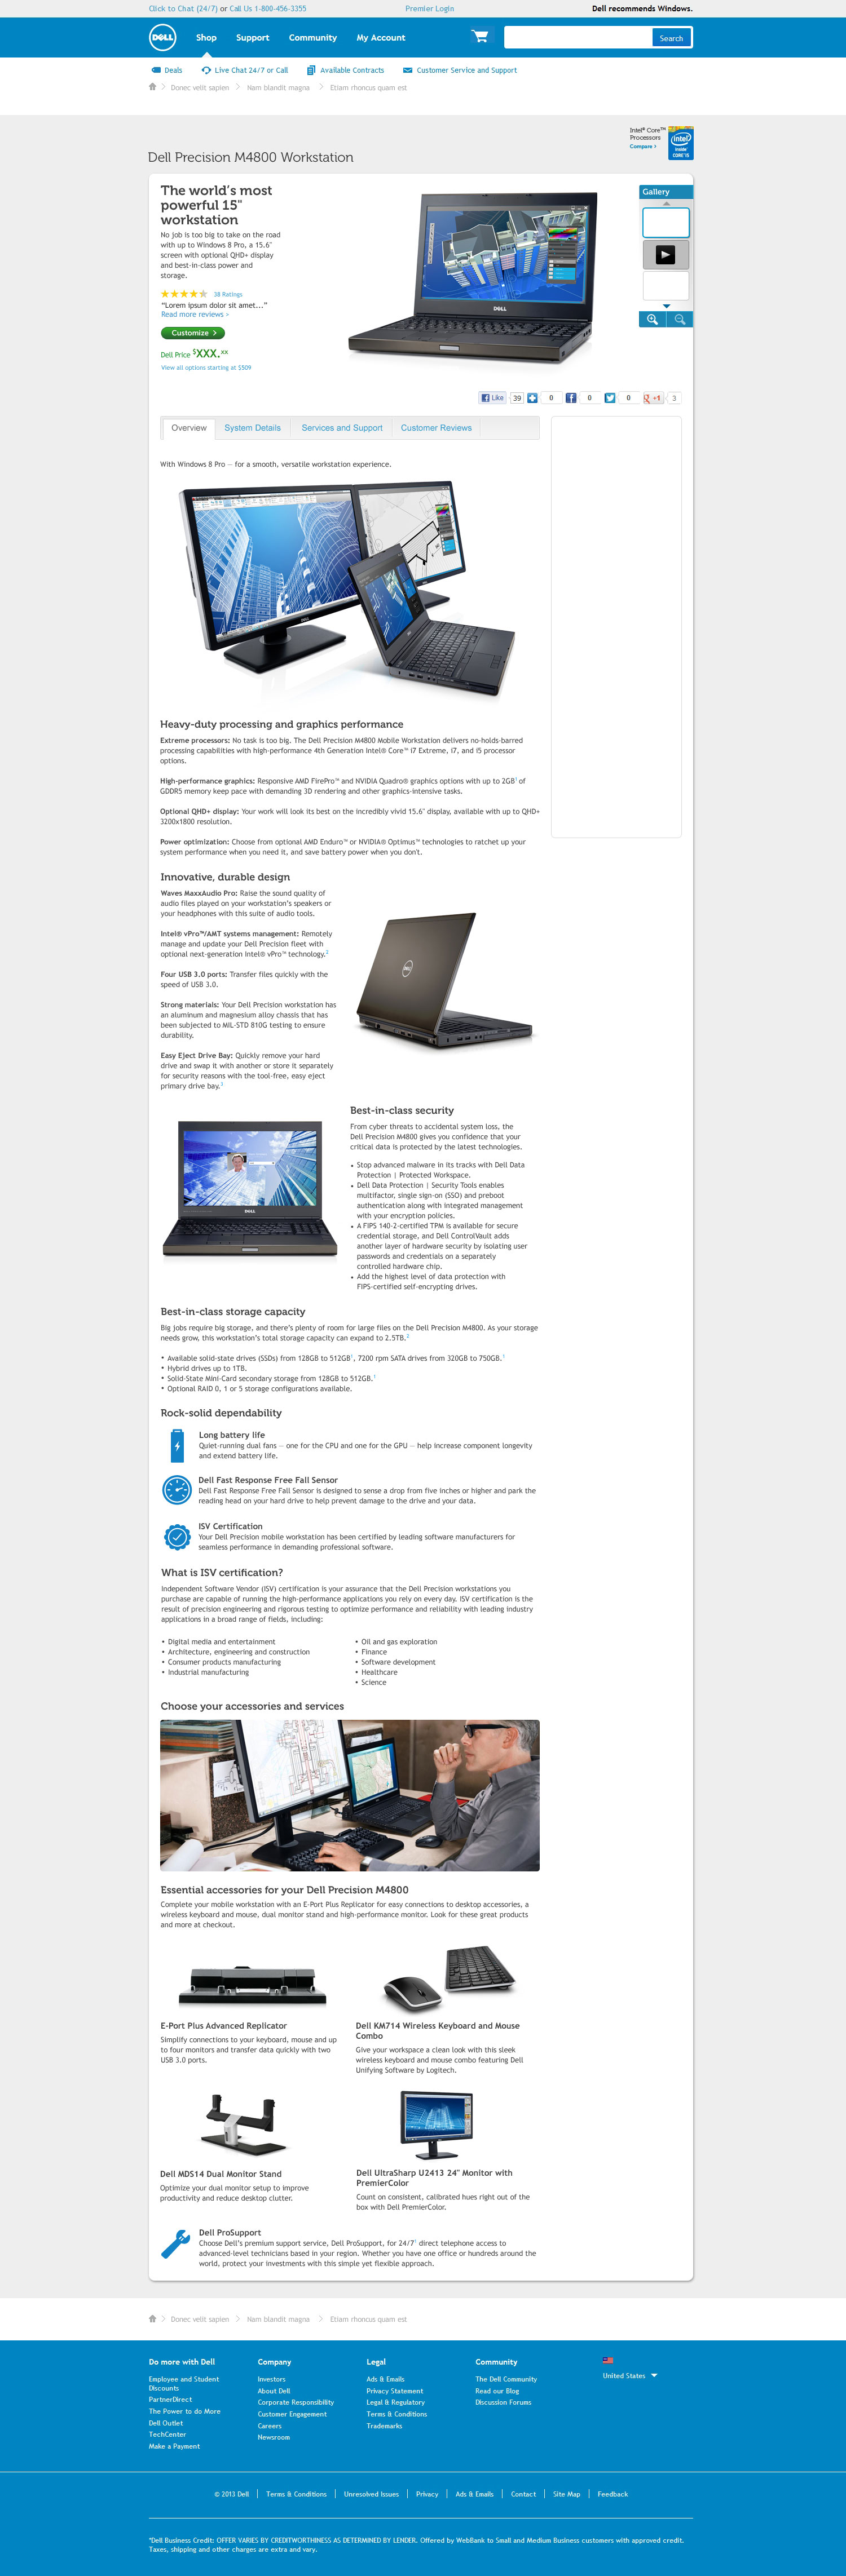 Dell Precision M4800 workstation details page